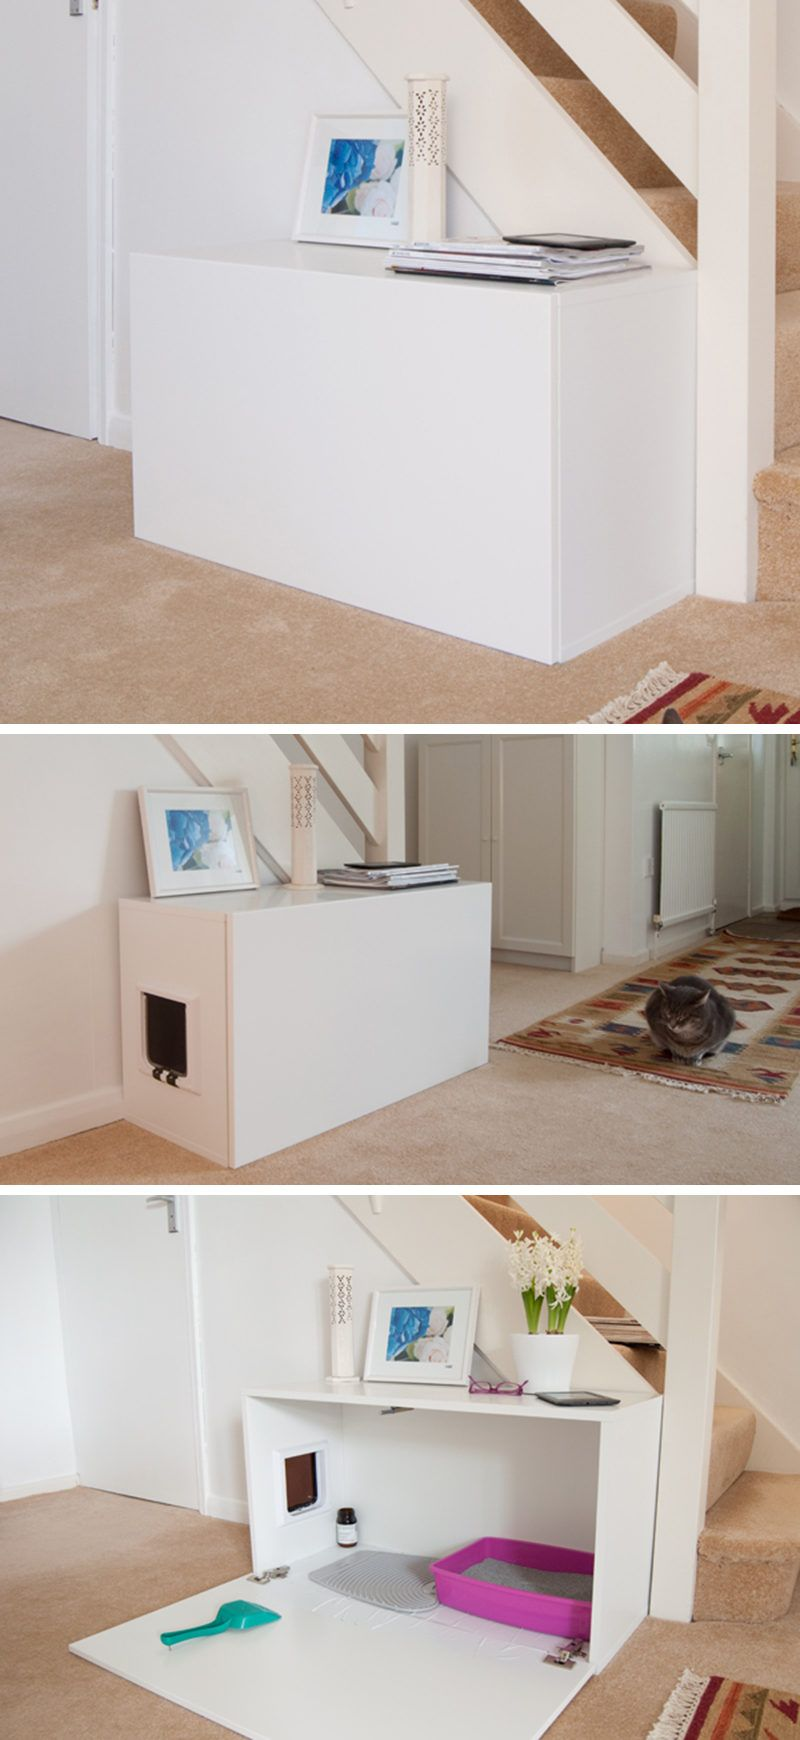 10 Ideas For Hiding Your Cats Litter Box Turn An Ikea Cabinet Into A Contemporary Place The